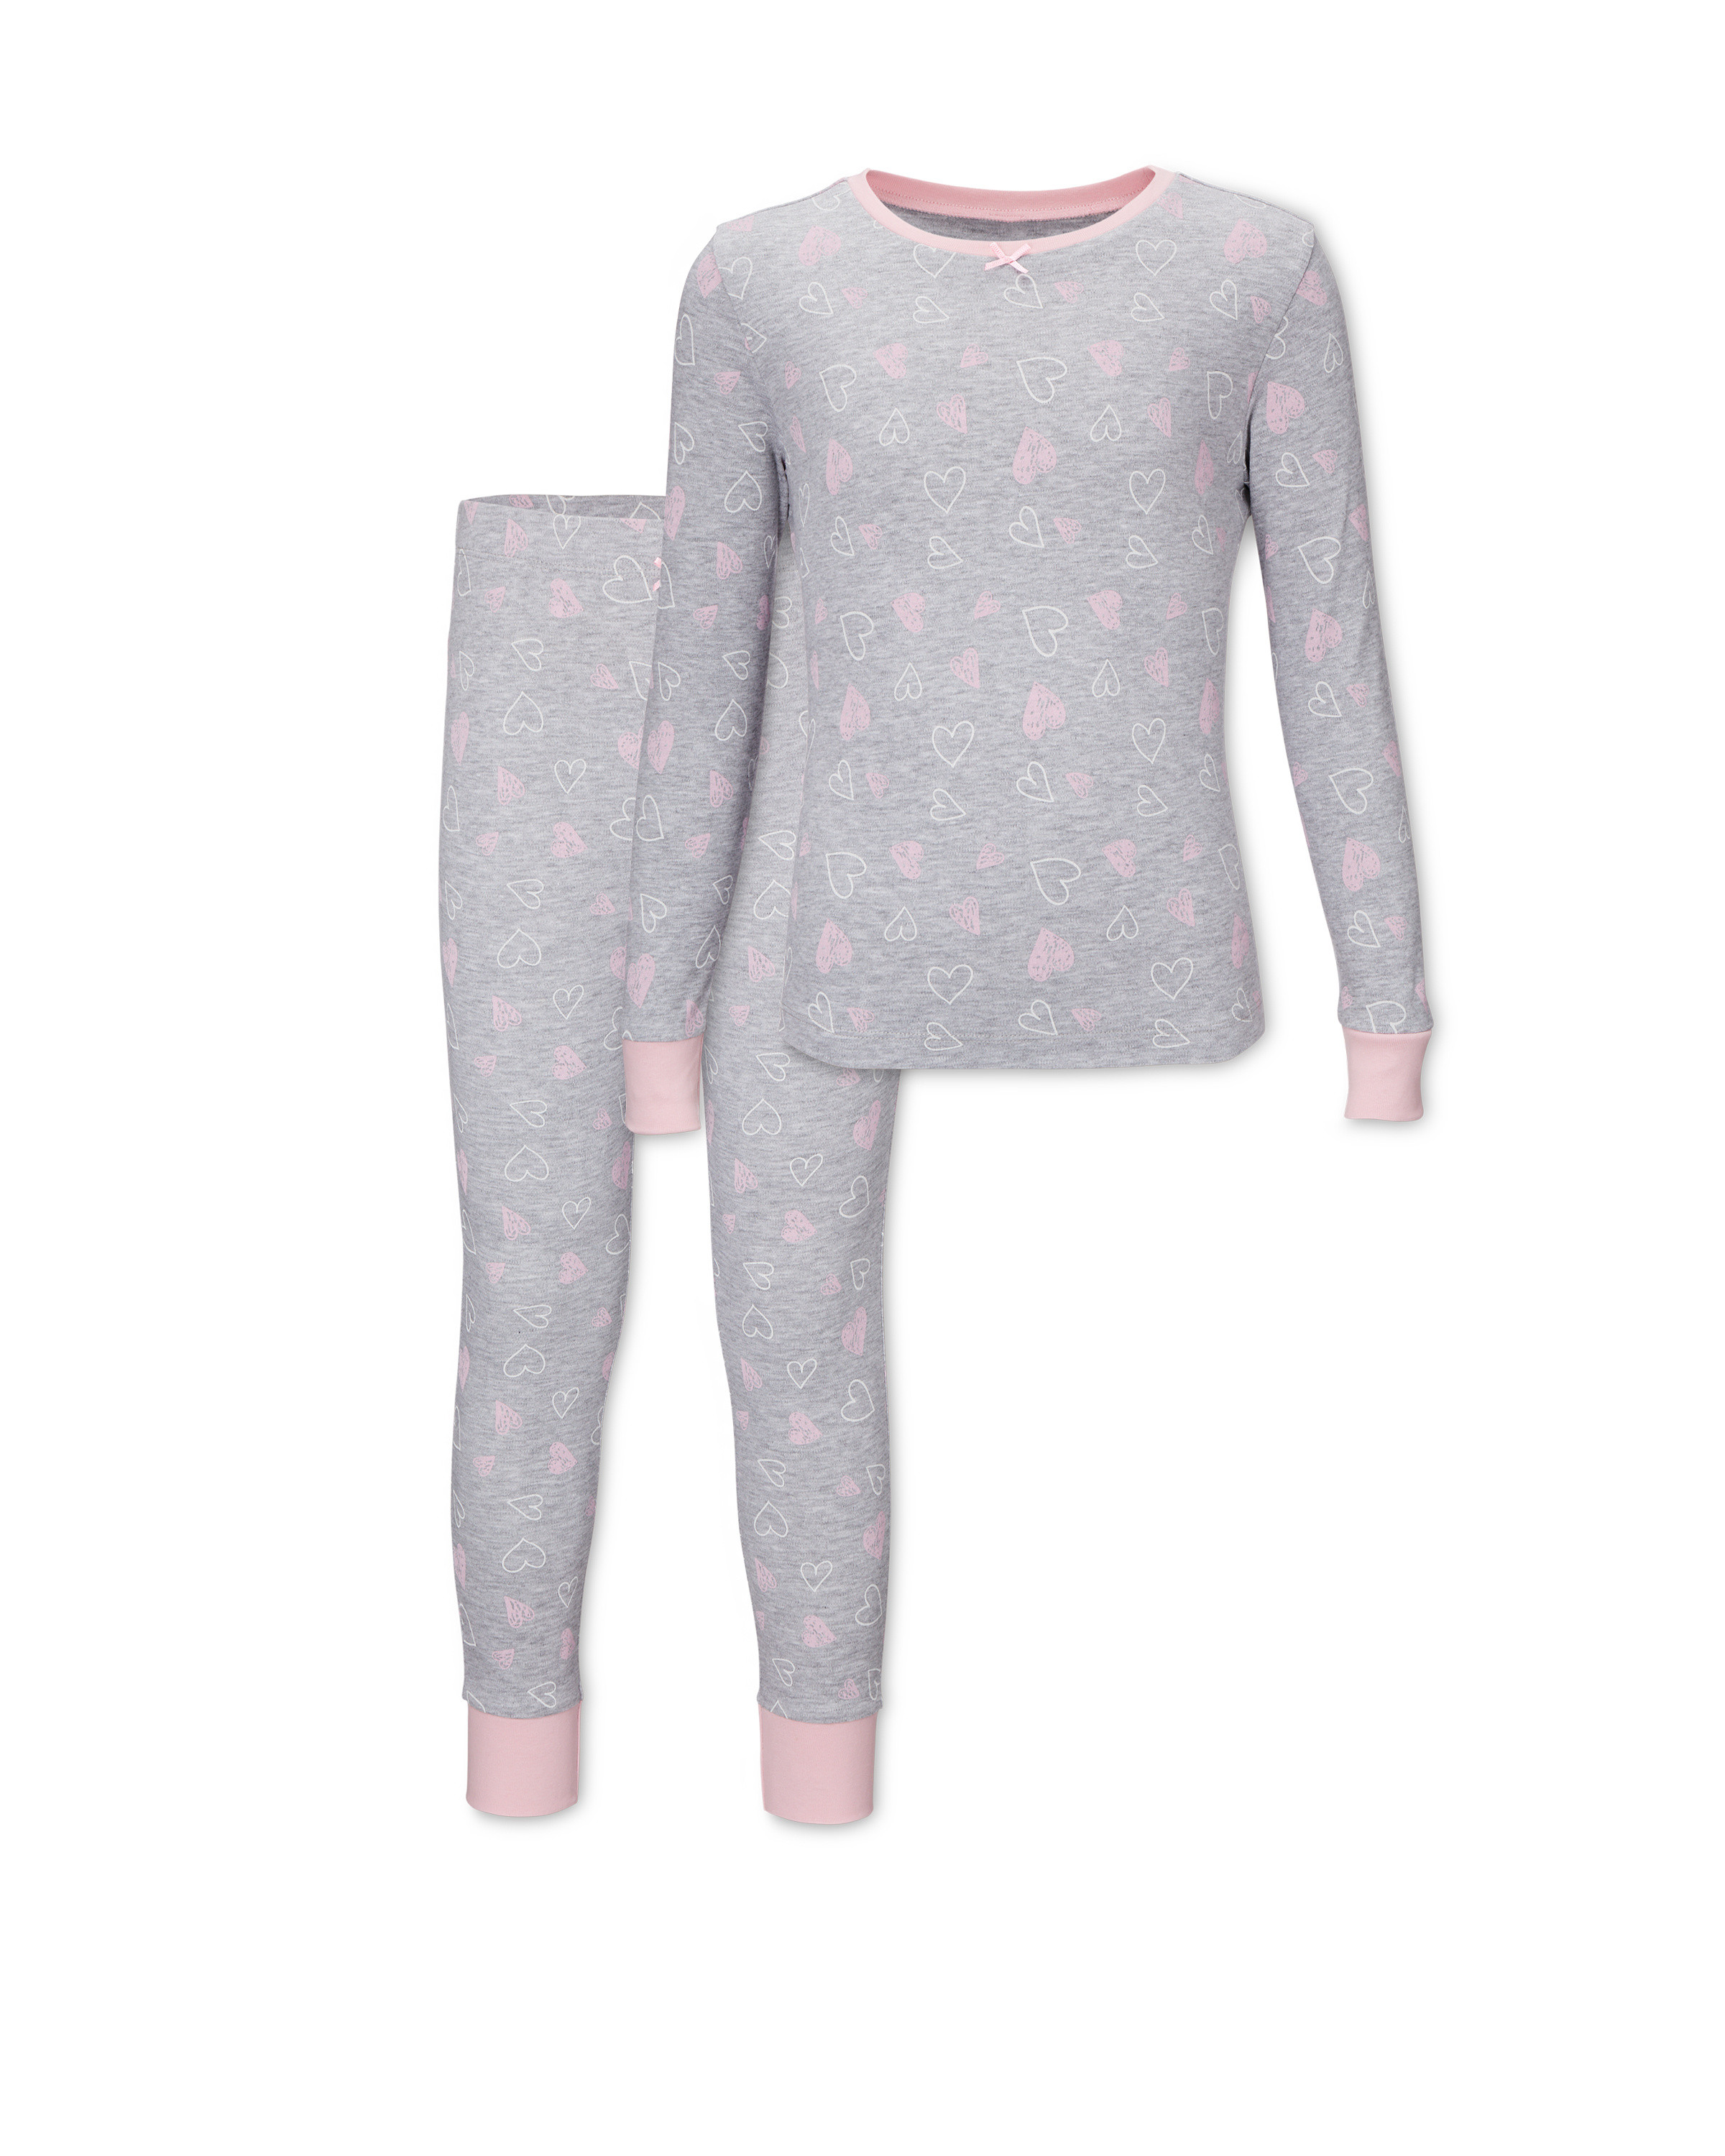 Kids' Organic Grey Heart Pyjamas